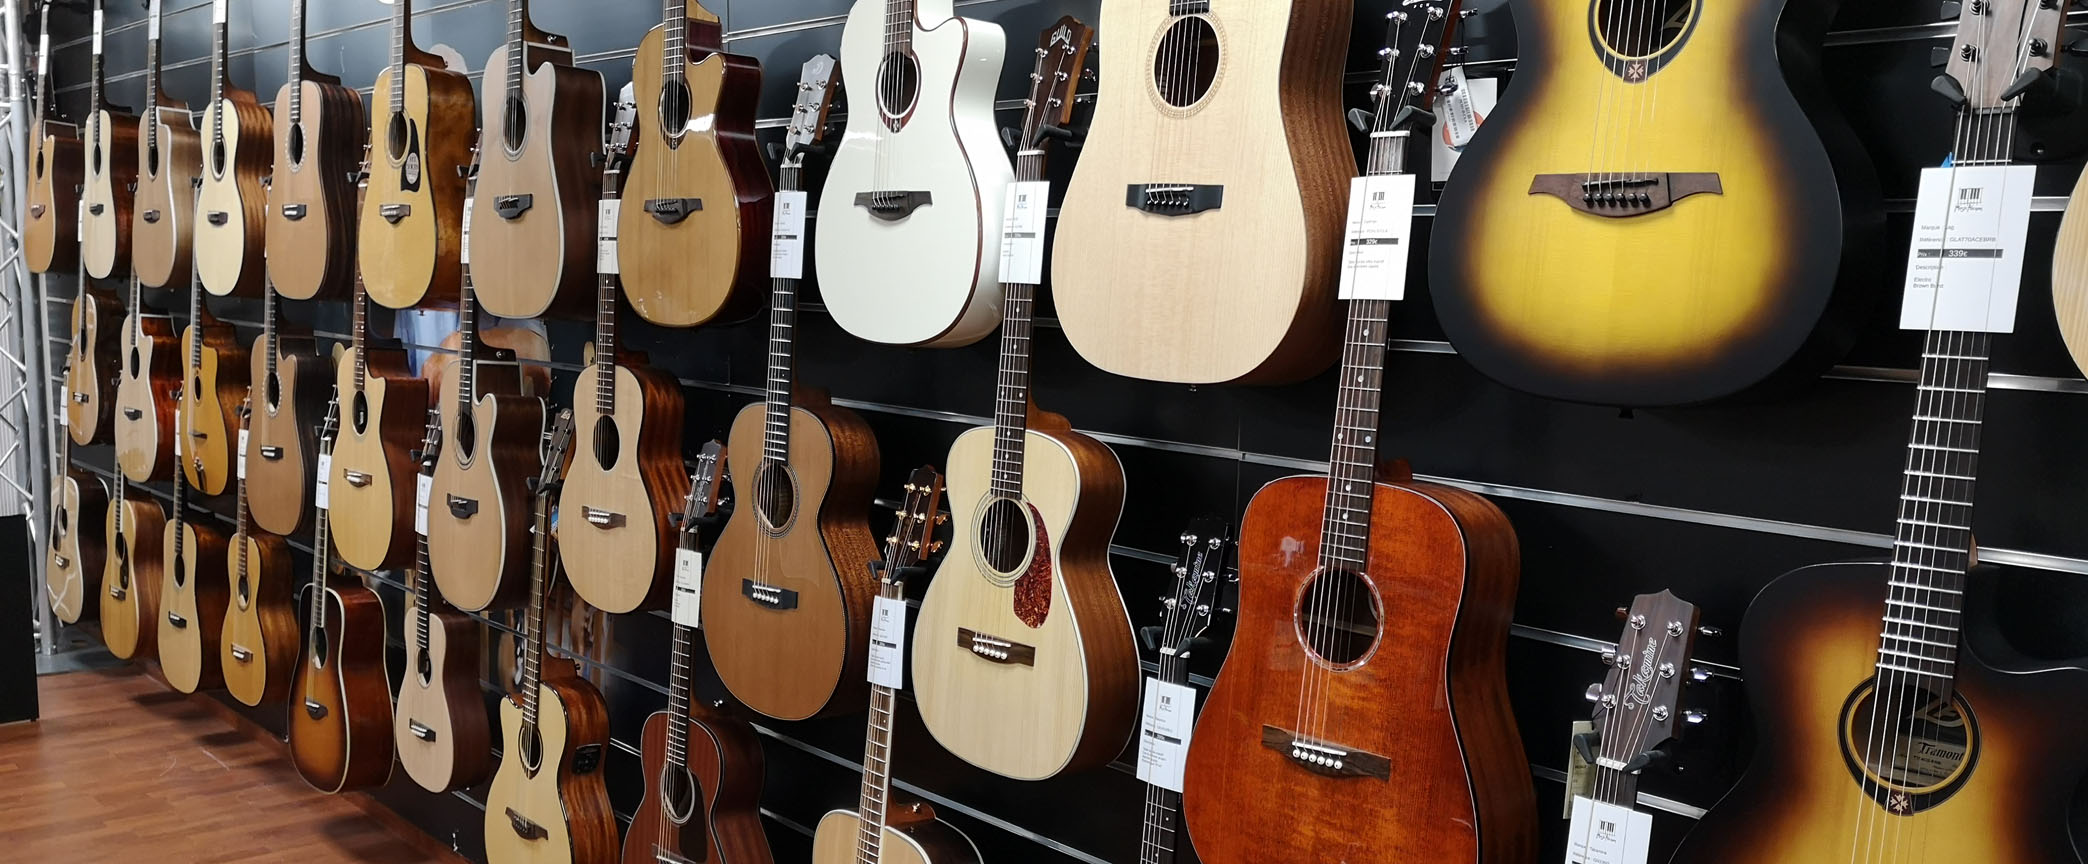 photo guitares magasin page acceuil